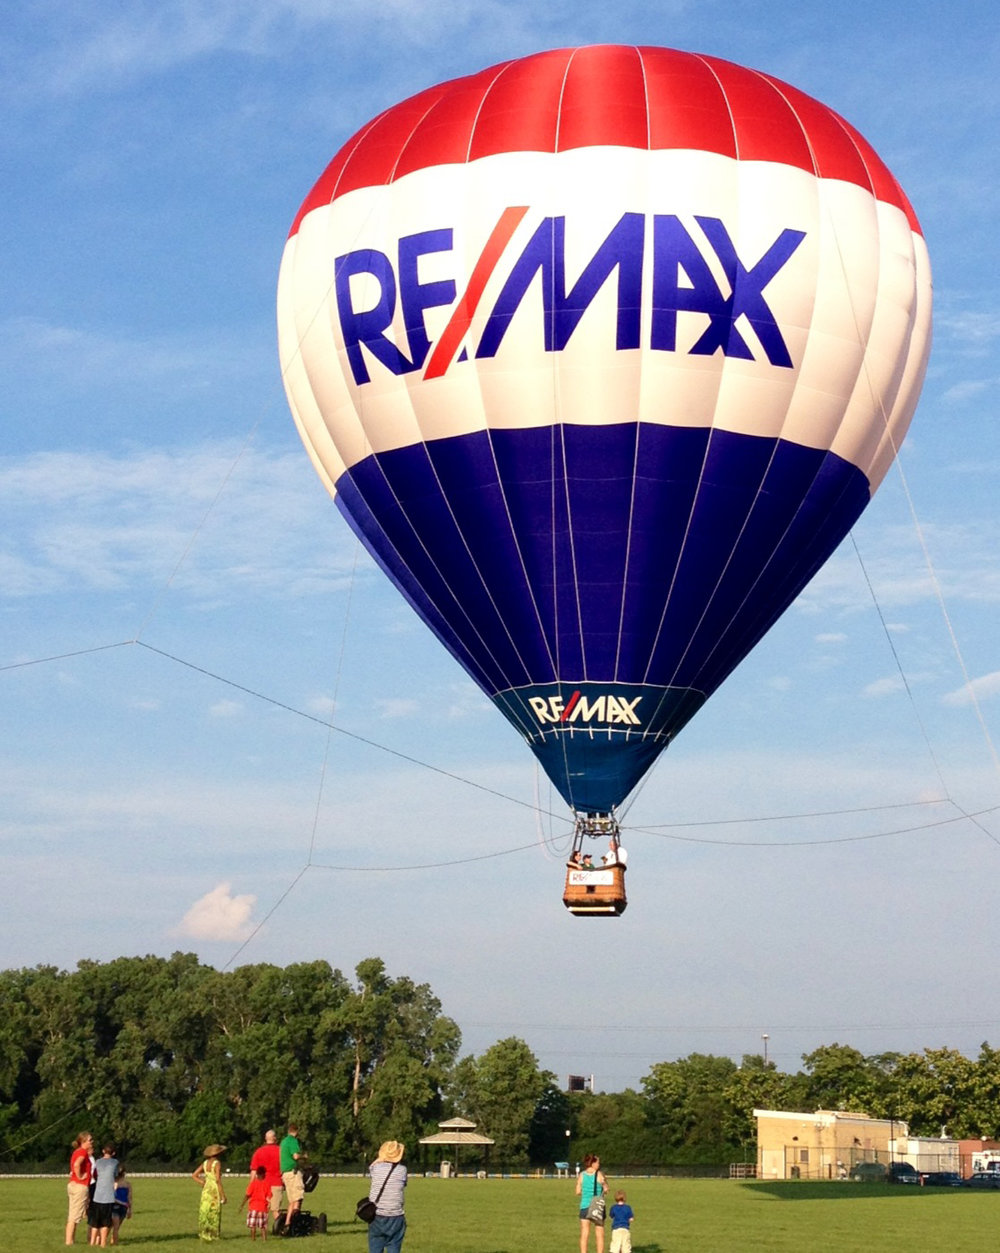 The Remax Hot Air Balloon tether rides will begin at 5:30 a.m. and end by 8:00 a.m. each day. Cost is $5.00 for children and $10.00 for adults. A parking and admission pass is required to access the balloons. -